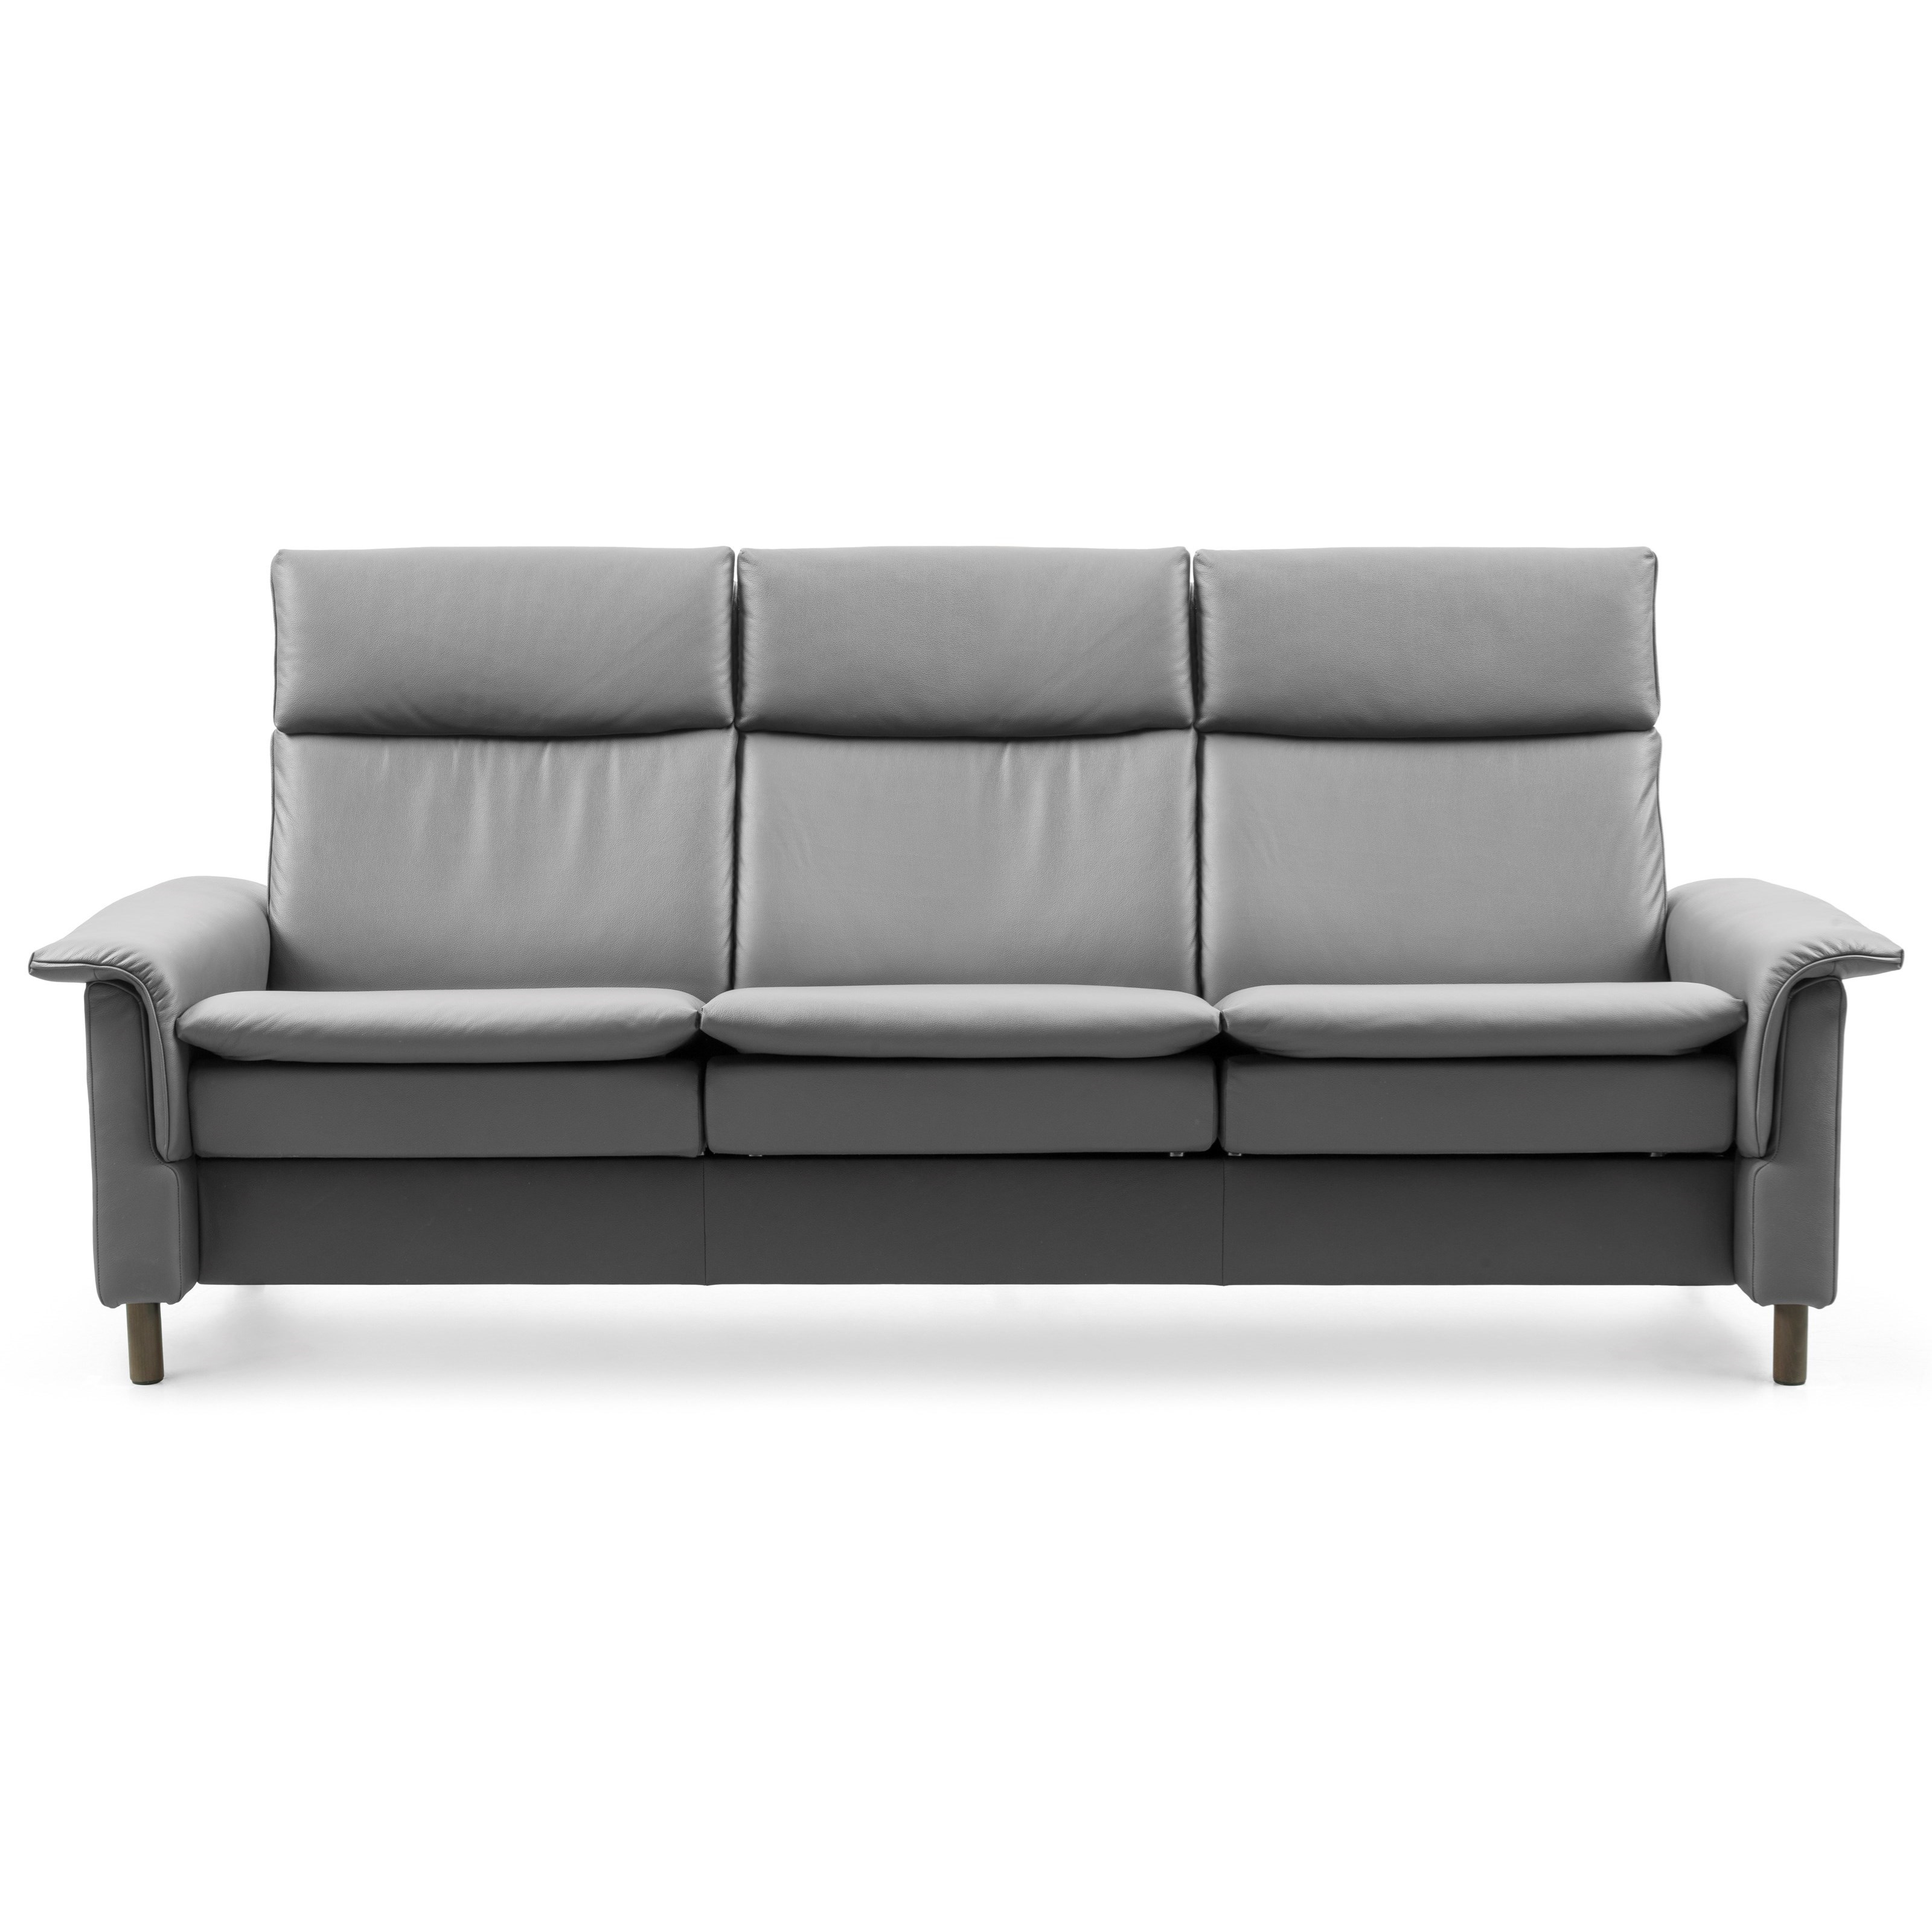 Aurora High-Back Reclining Sofa by Stressless at Virginia Furniture Market